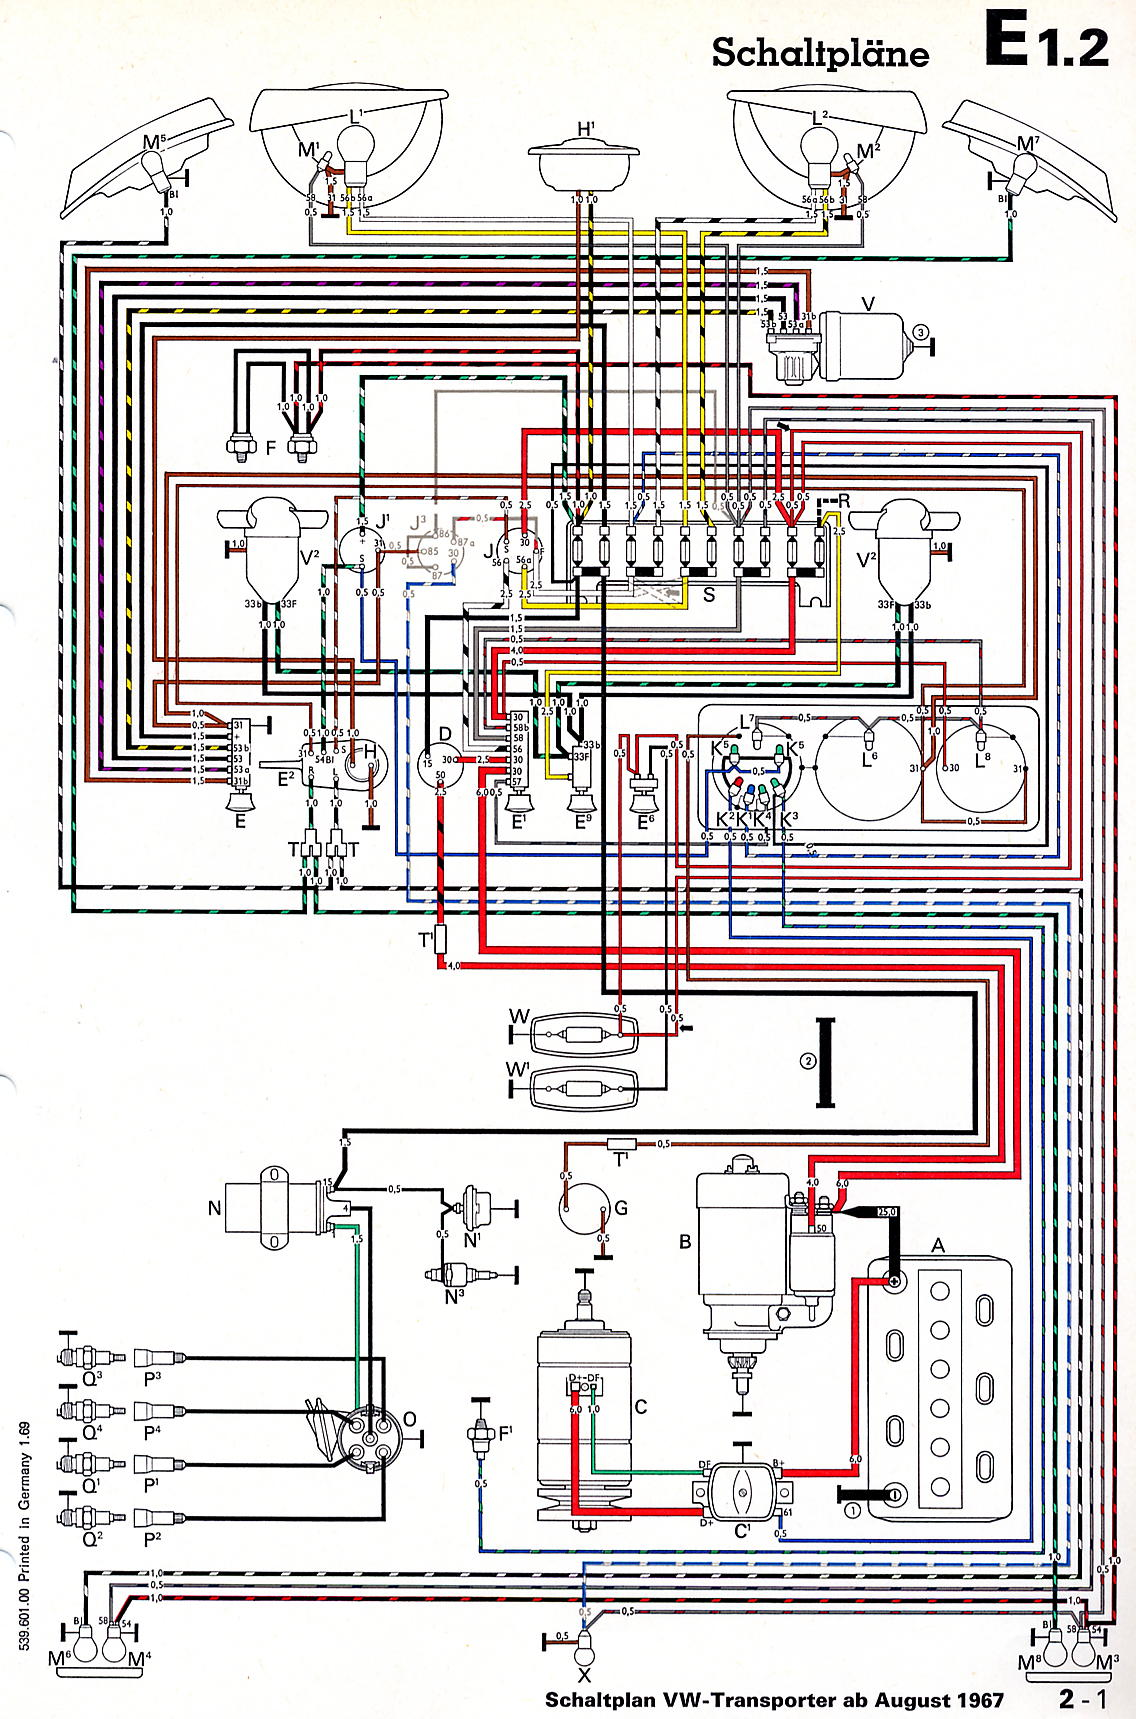 Vw Bus And Other Wiring Diagrams Control Circuit Motor Repalcement Parts Diagram Com